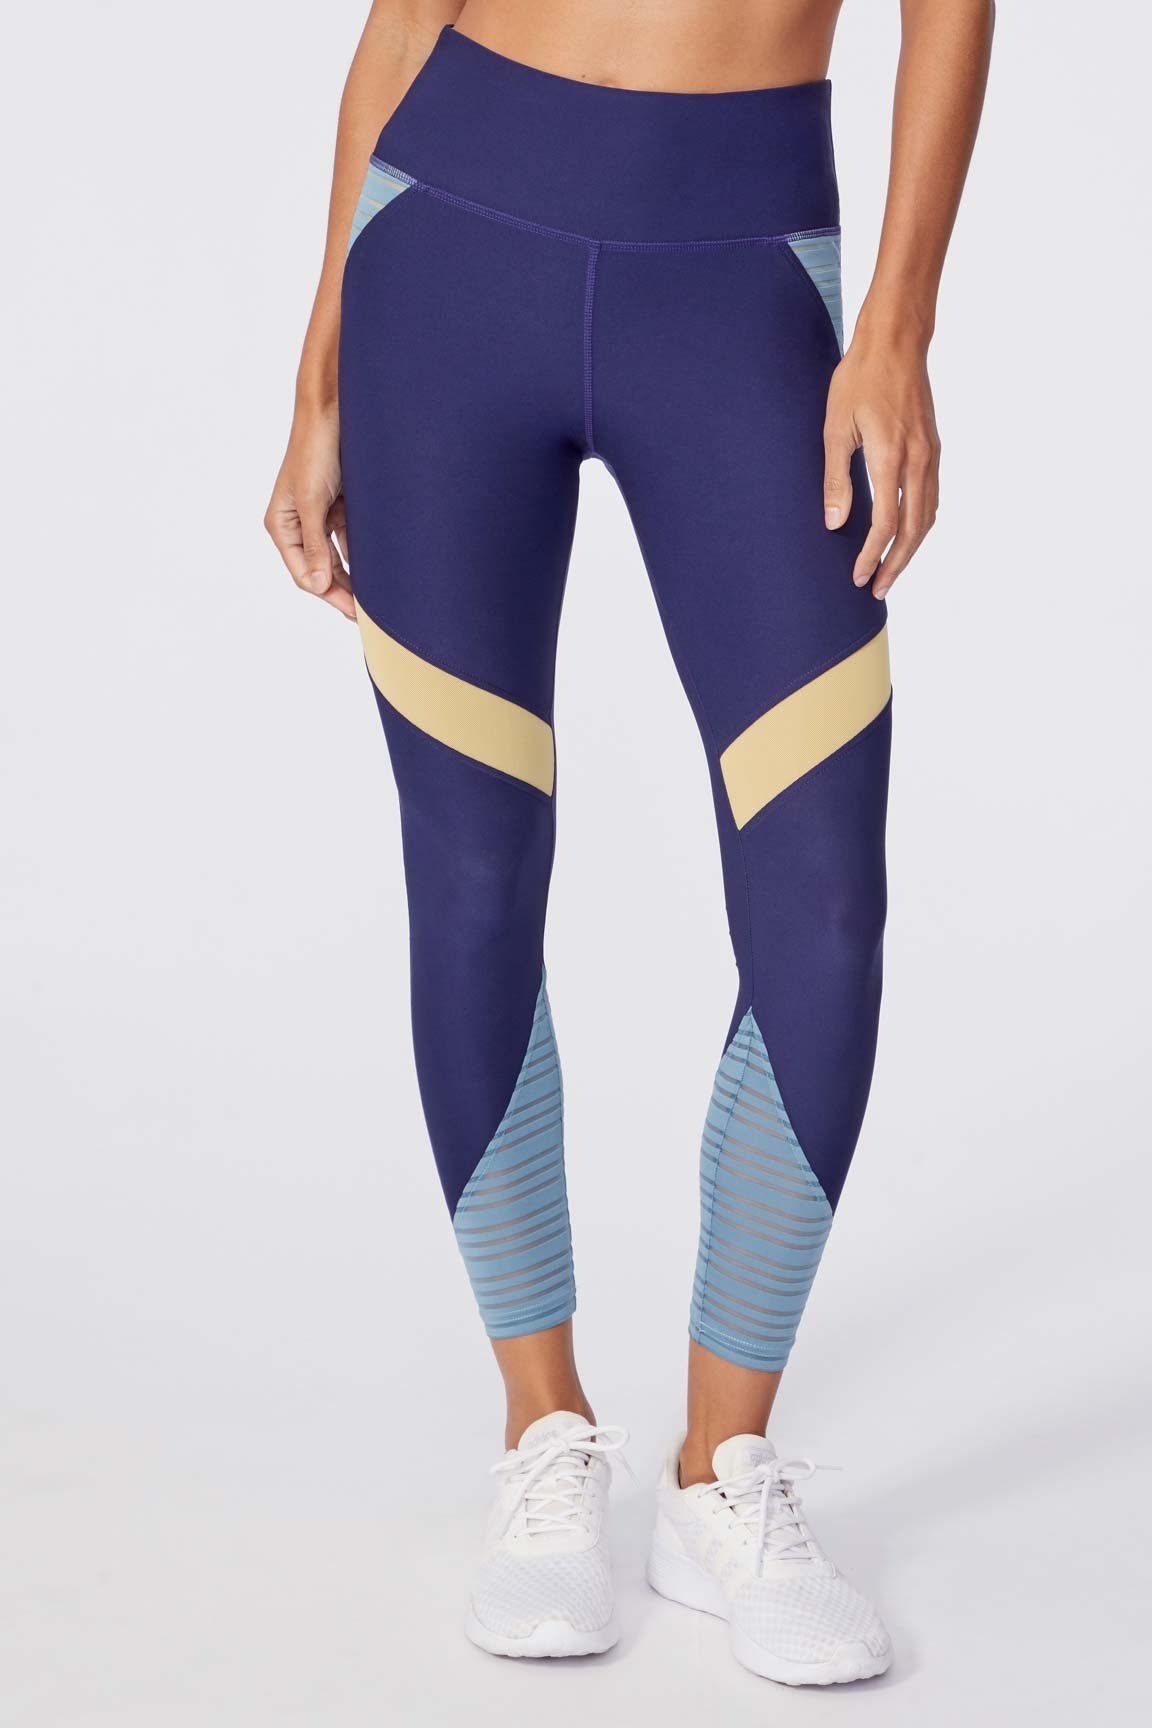 "Chrissy 25"" Legging (Eclipse/ Smoke Blue)"